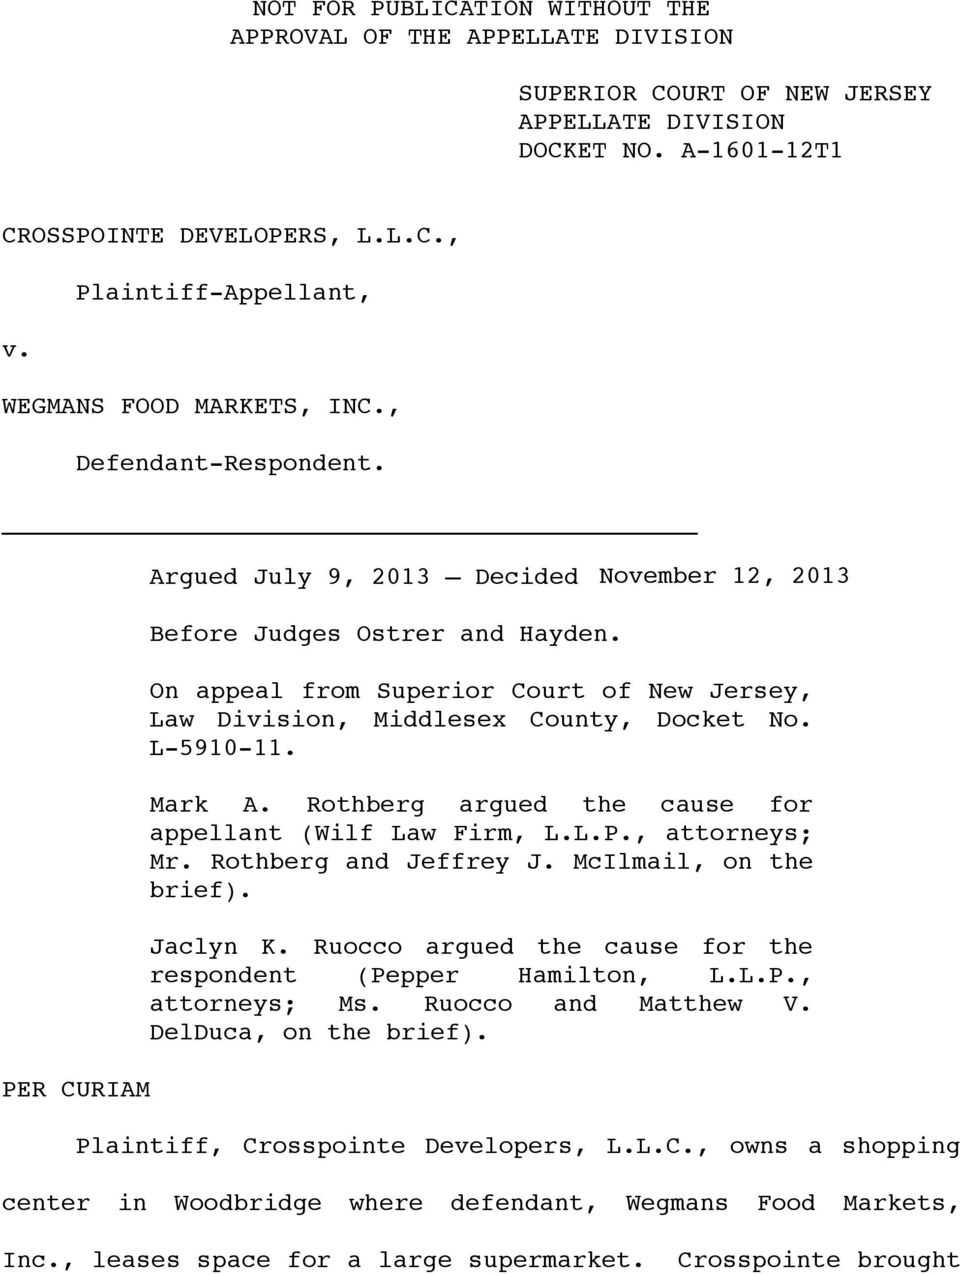 On appeal from Superior Court of New Jersey, Law Division, Middlesex County, Docket No. L-5910-11. Mark A. Rothberg argued the cause for appellant (Wilf Law Firm, L.L.P., attorneys; Mr.